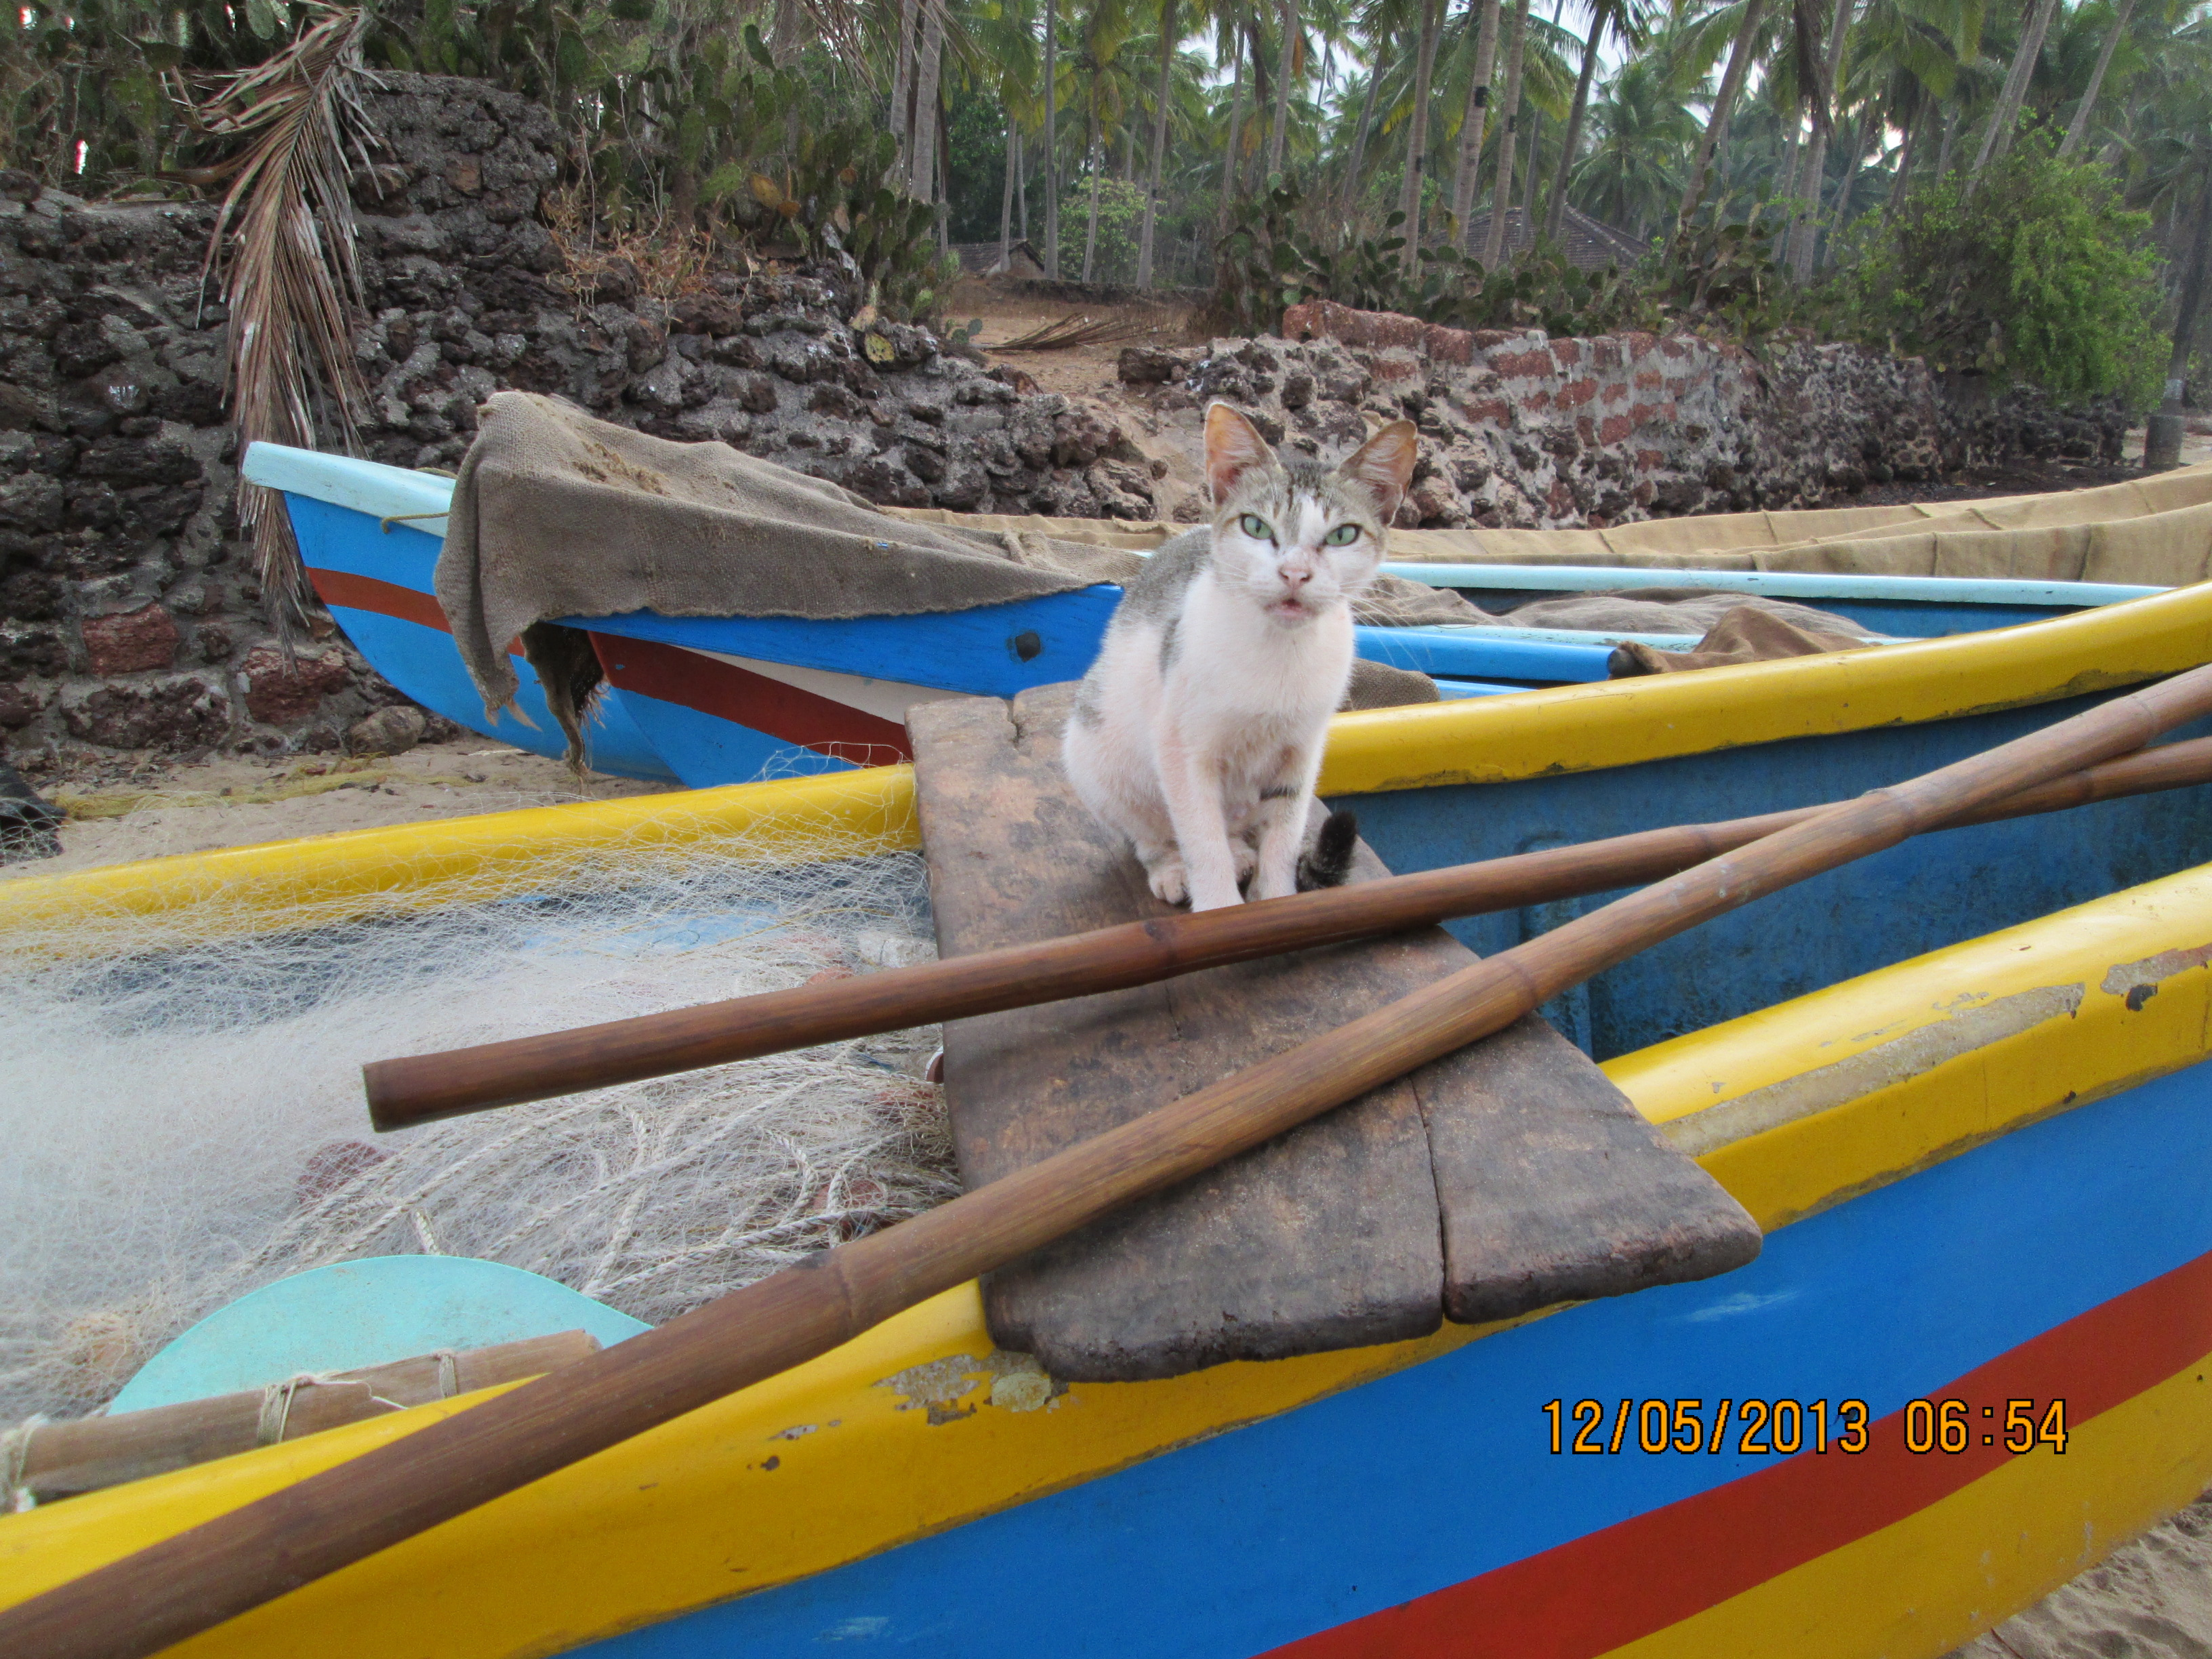 Beach cat commercial boats autos post for Cat goes fishing wiki